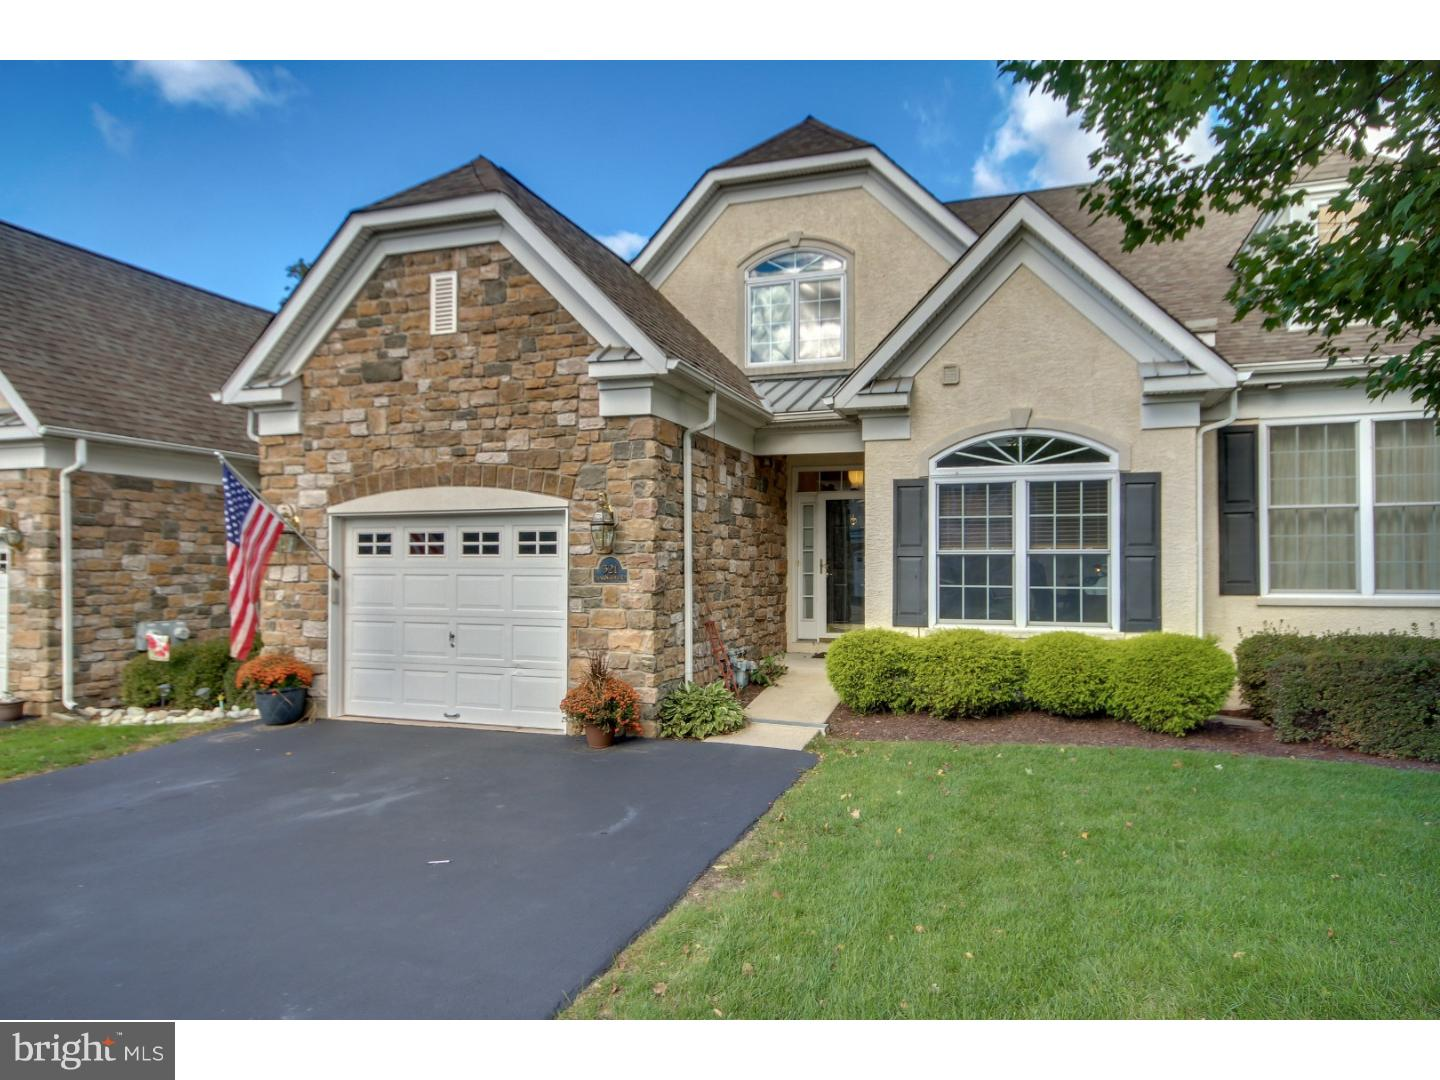 321 HARRINGTON WAY, SOUDERTON, PA 18964